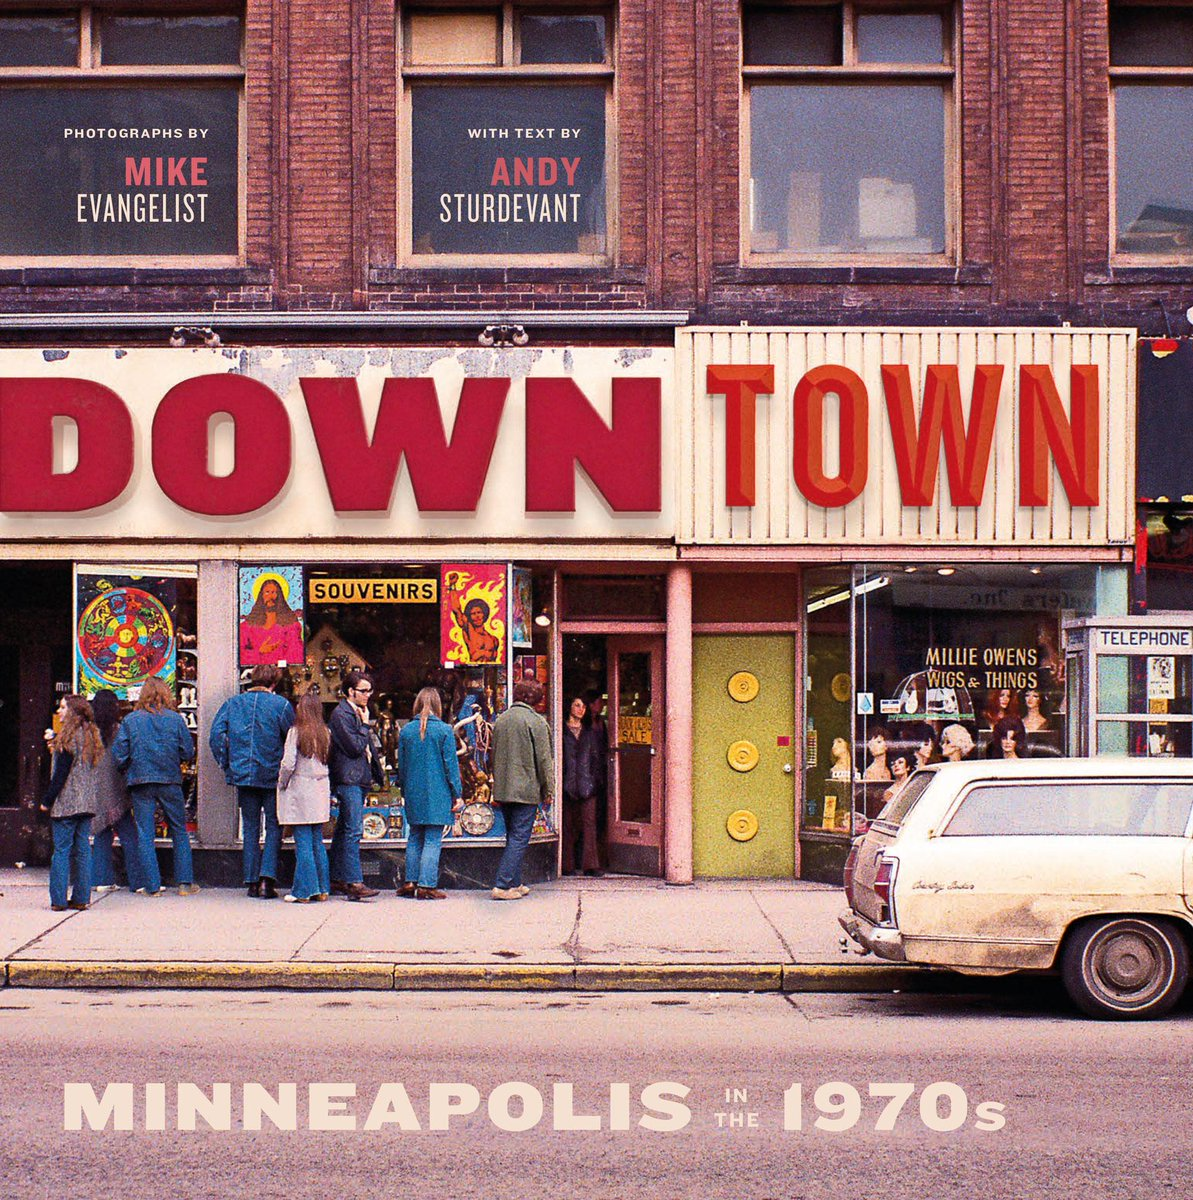 Superb 1970s-Minneapolis photos by @MikeEvangelist are now in book form. Buy it, you shall. http://t.co/cdpYQM69m8 http://t.co/G46SqTrhvK